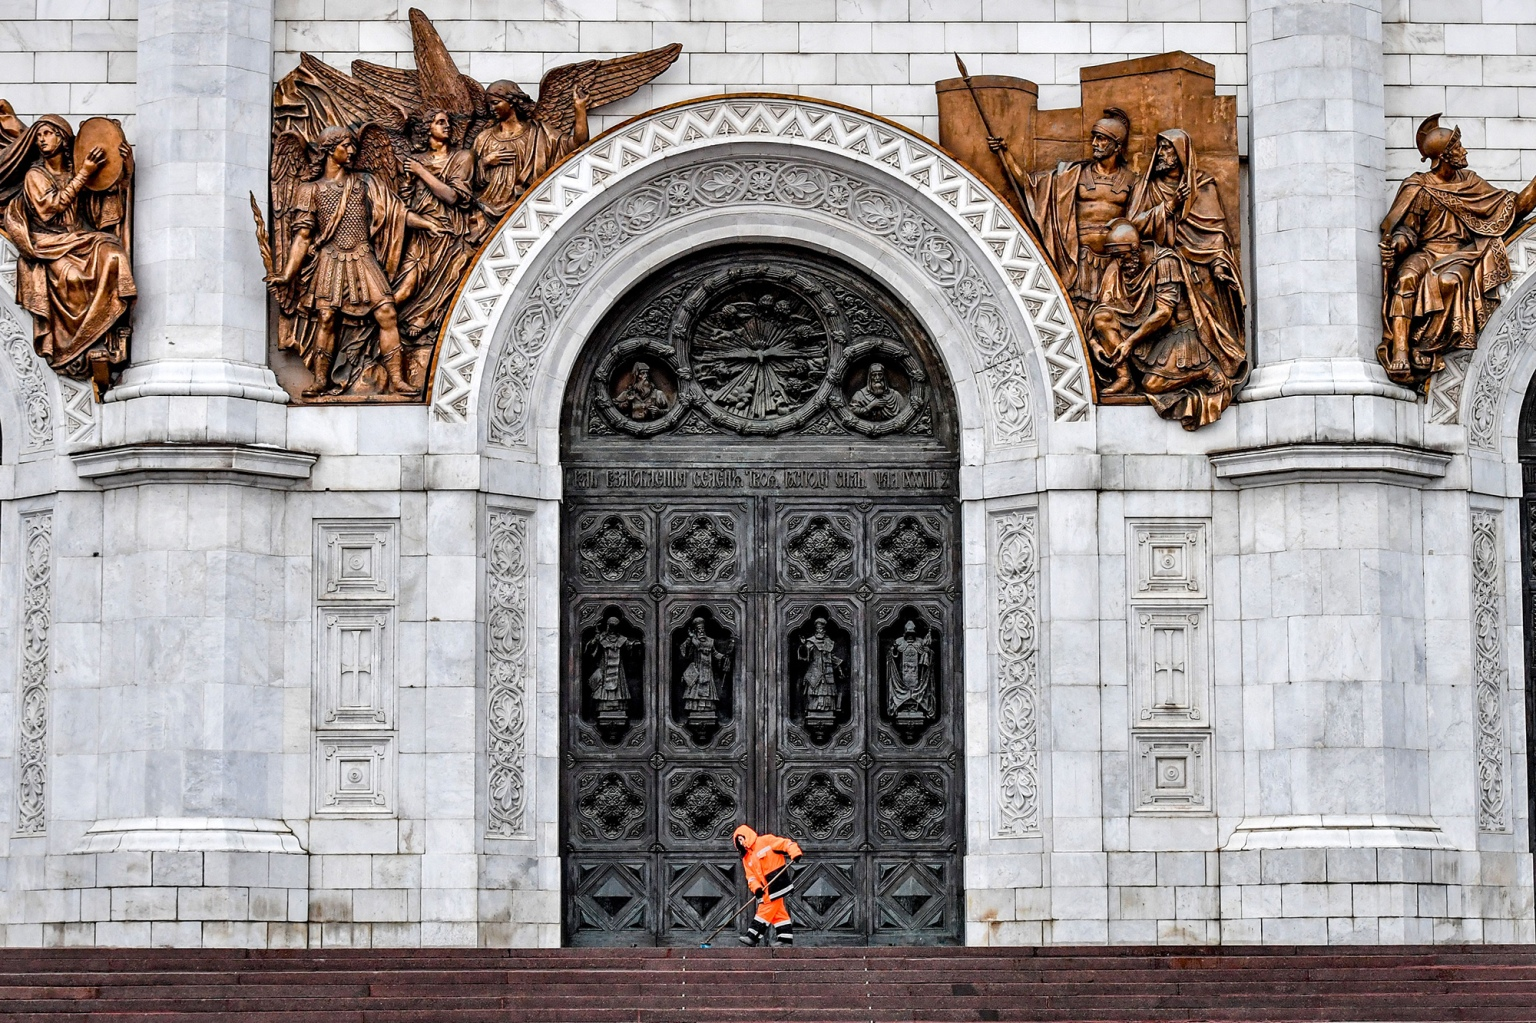 A municipal worker clears the ice from the steps of the Cathedral of Christ the Savior in downtown Moscow on Feb. 5. (Yuri Kadobnov/AFP/Getty Images)